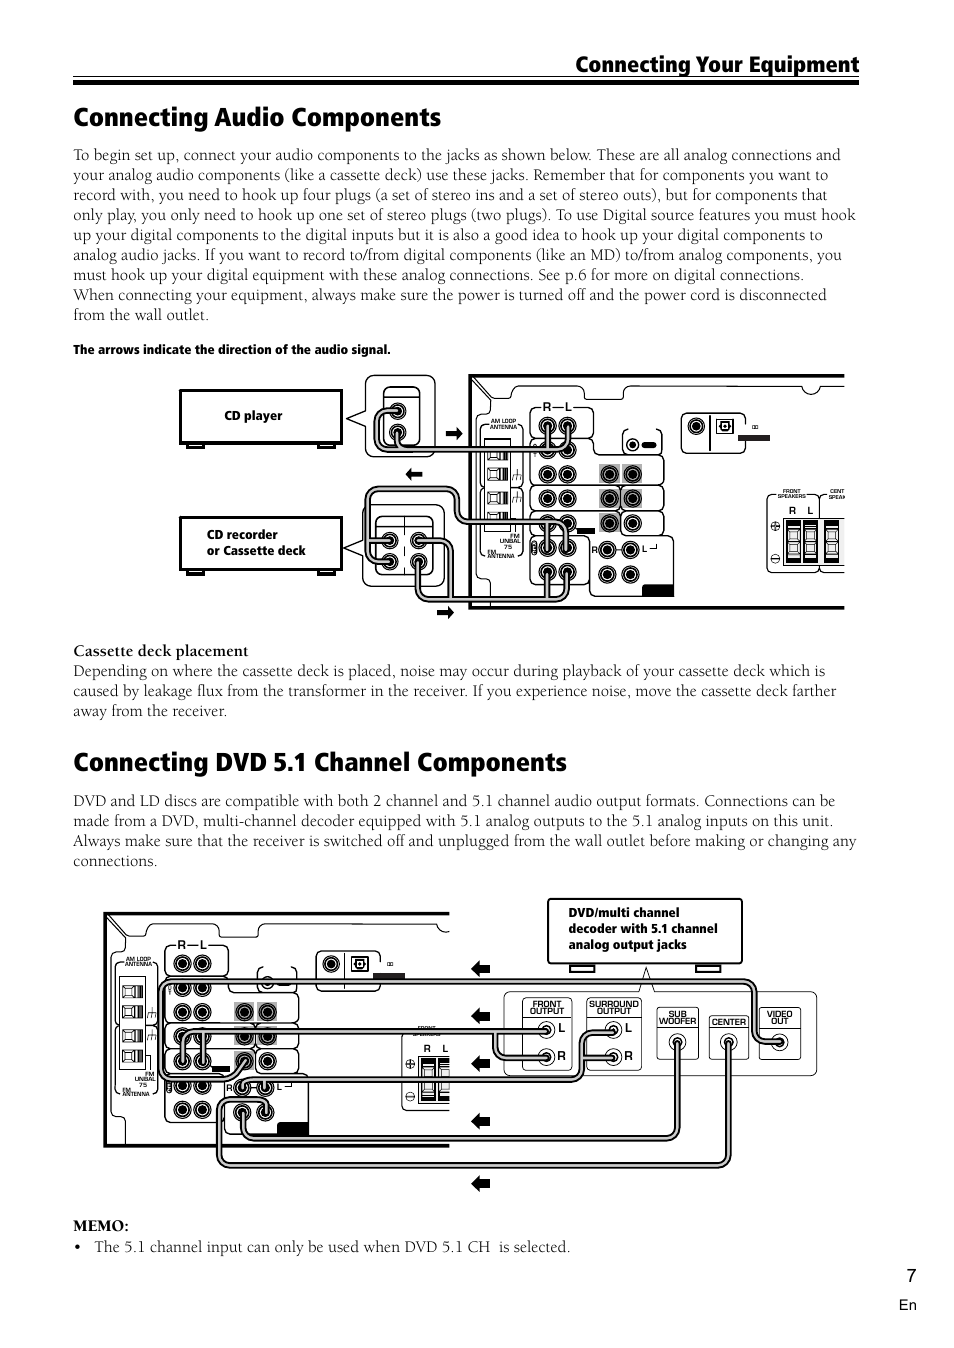 medium resolution of connecting audio components 7 connecting dvd 5 1 channel components 7 connecting audio components